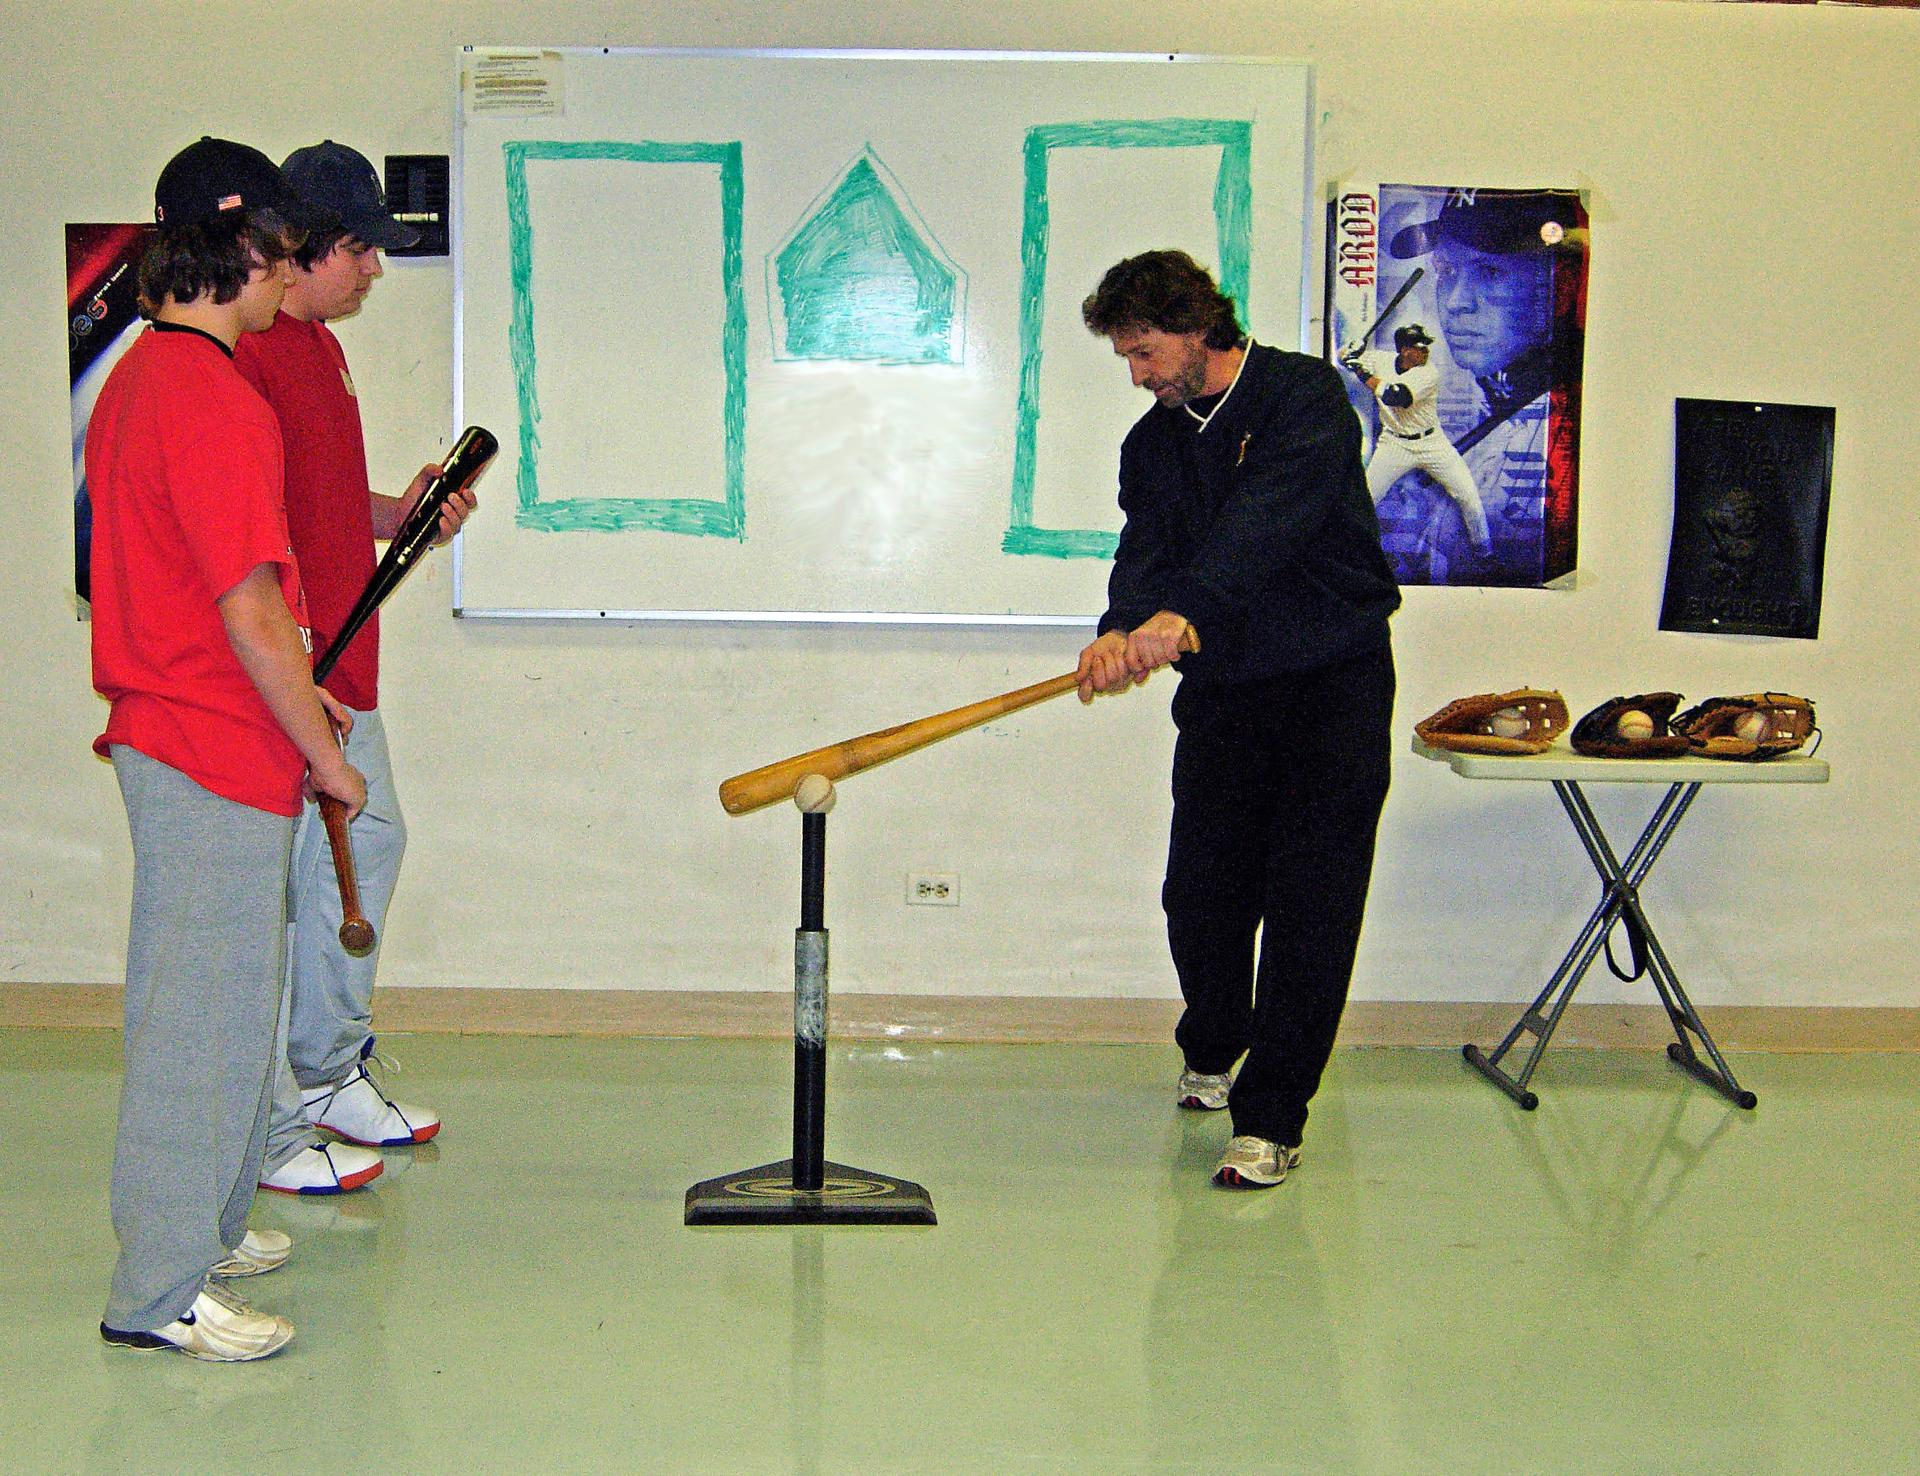 Batting Tee Success is Crucial – Tip of the Day